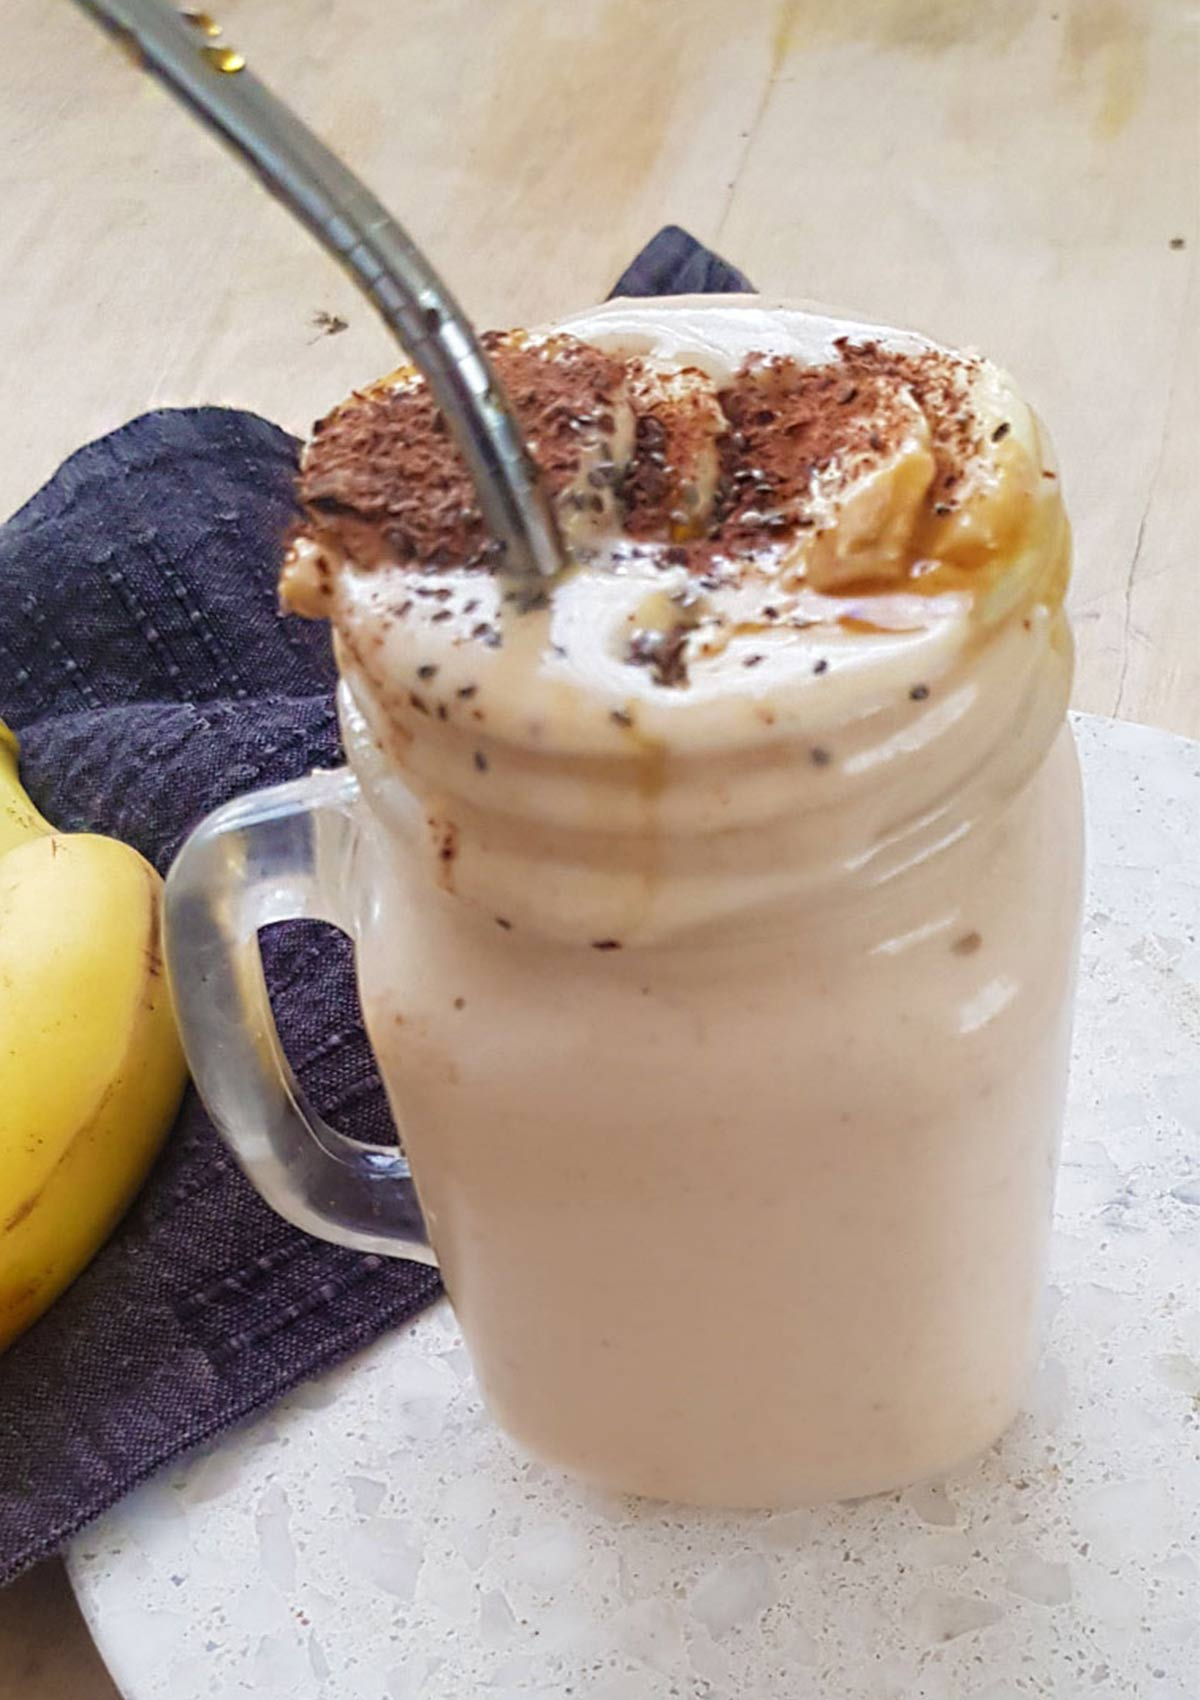 peanut butter banana smoothie in a glass jar with metal straw